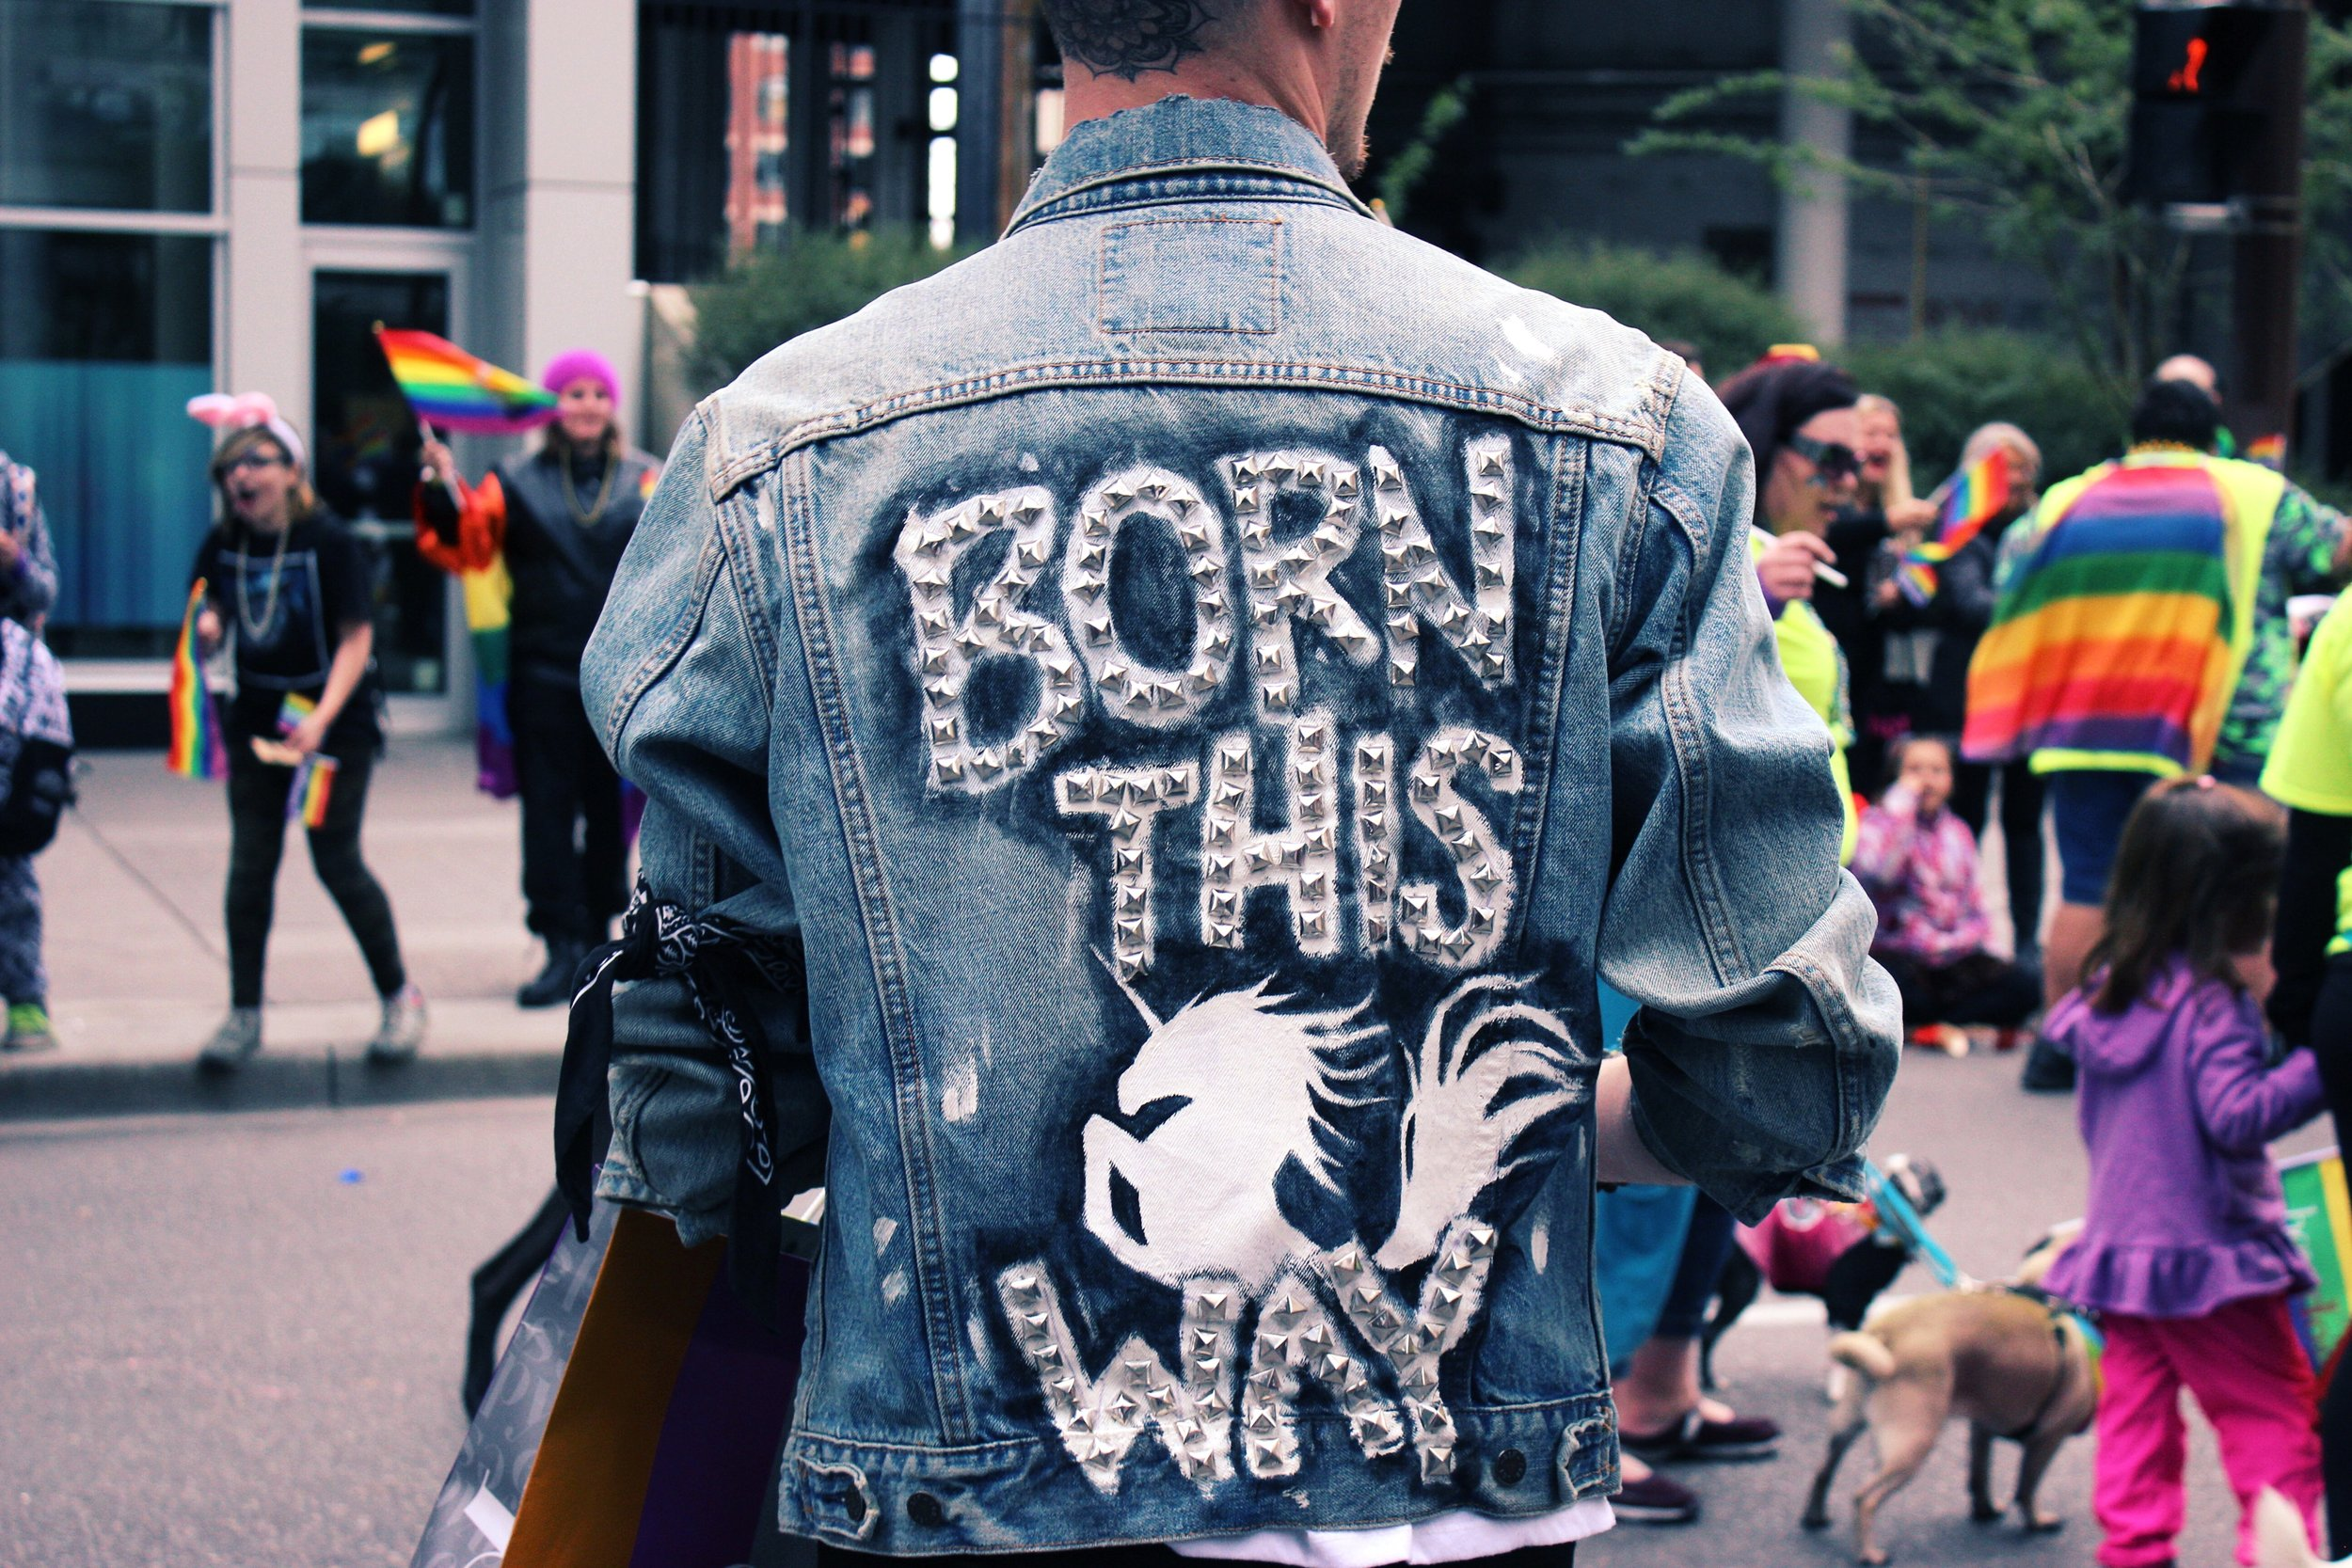 EPISODE 2:QUEERING LABELS - When are labels empowering? When are they Hurtful? should we even be using them? Listen in for a discussion on the label queer and what is has meant for Kama La Maquerel.